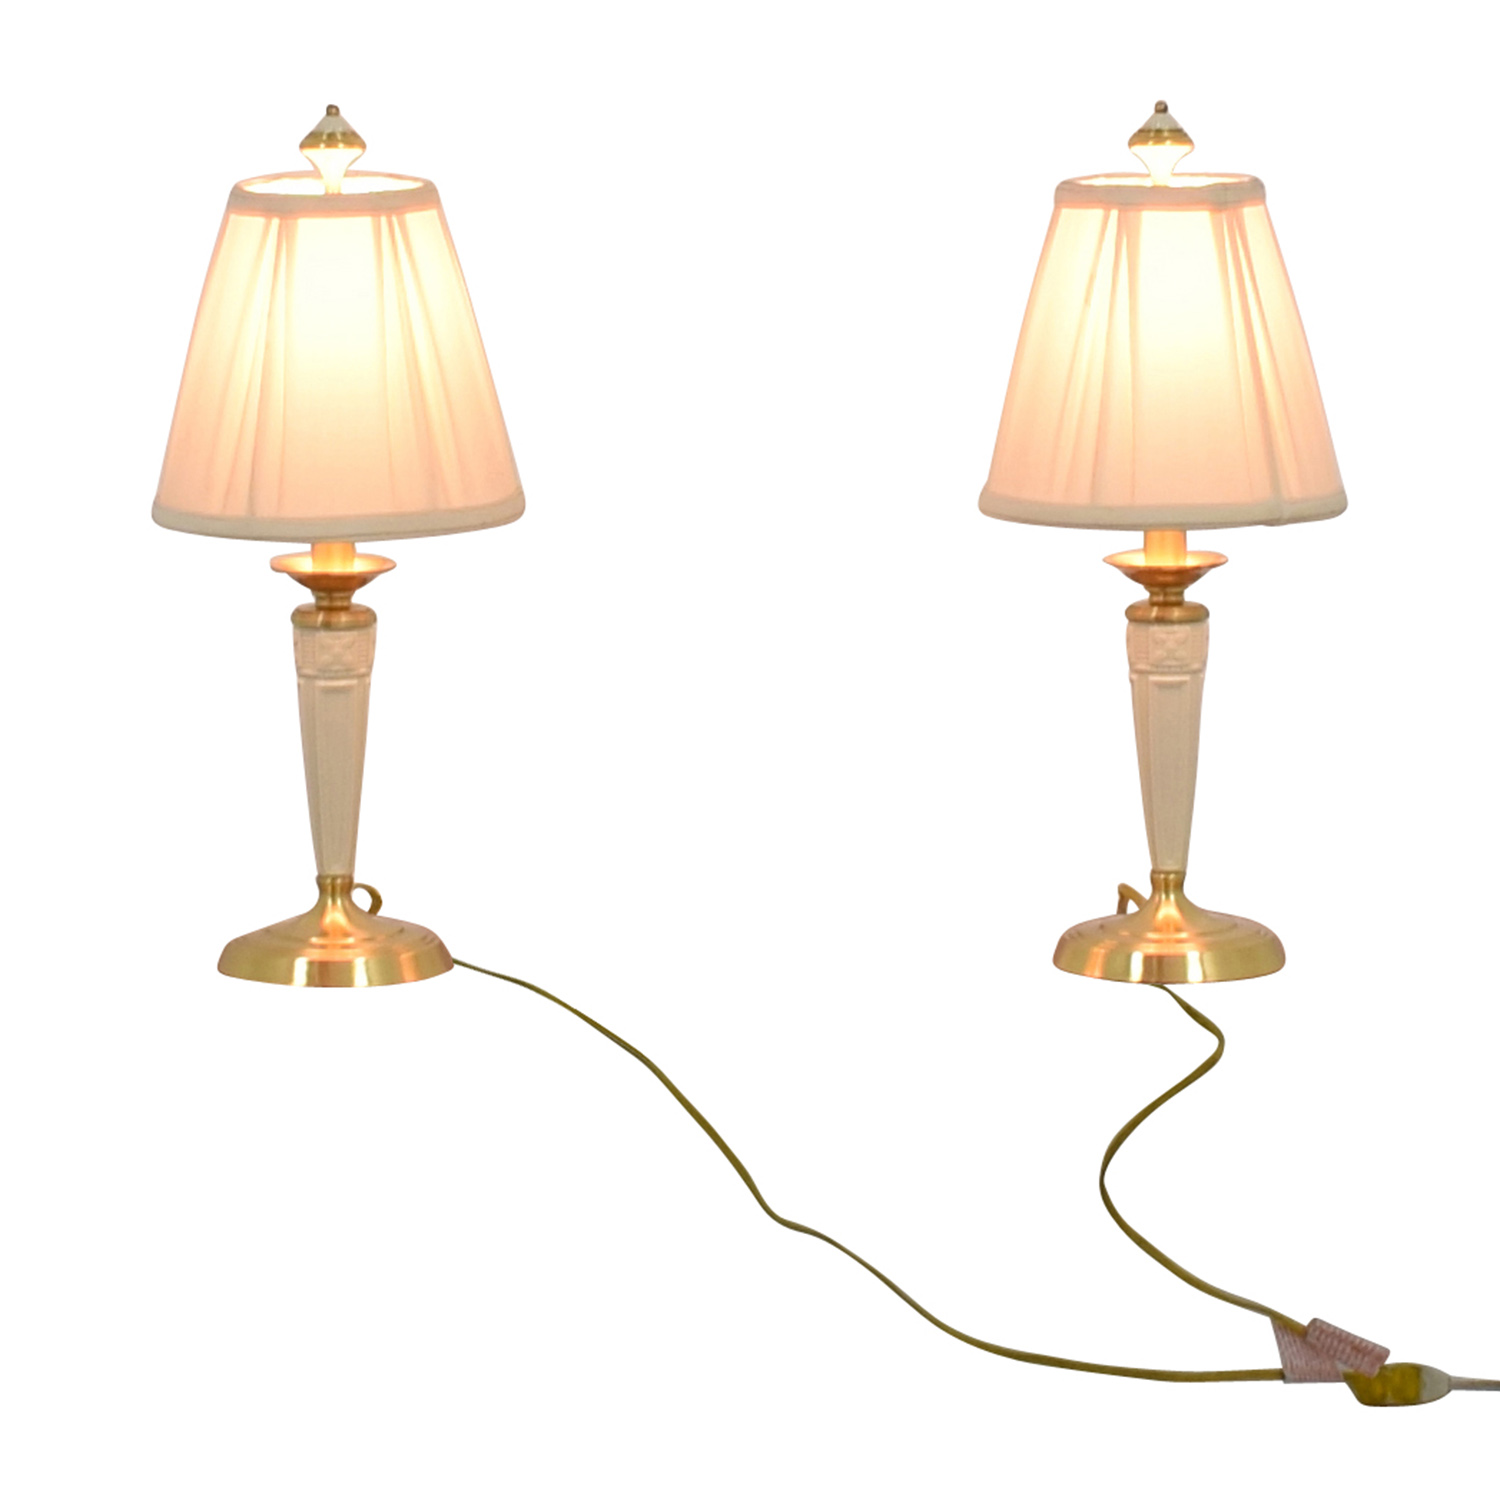 88 off lenox lenox white and gold base table lamps decor lenox lenox white and gold base table lamps for sale geotapseo Image collections